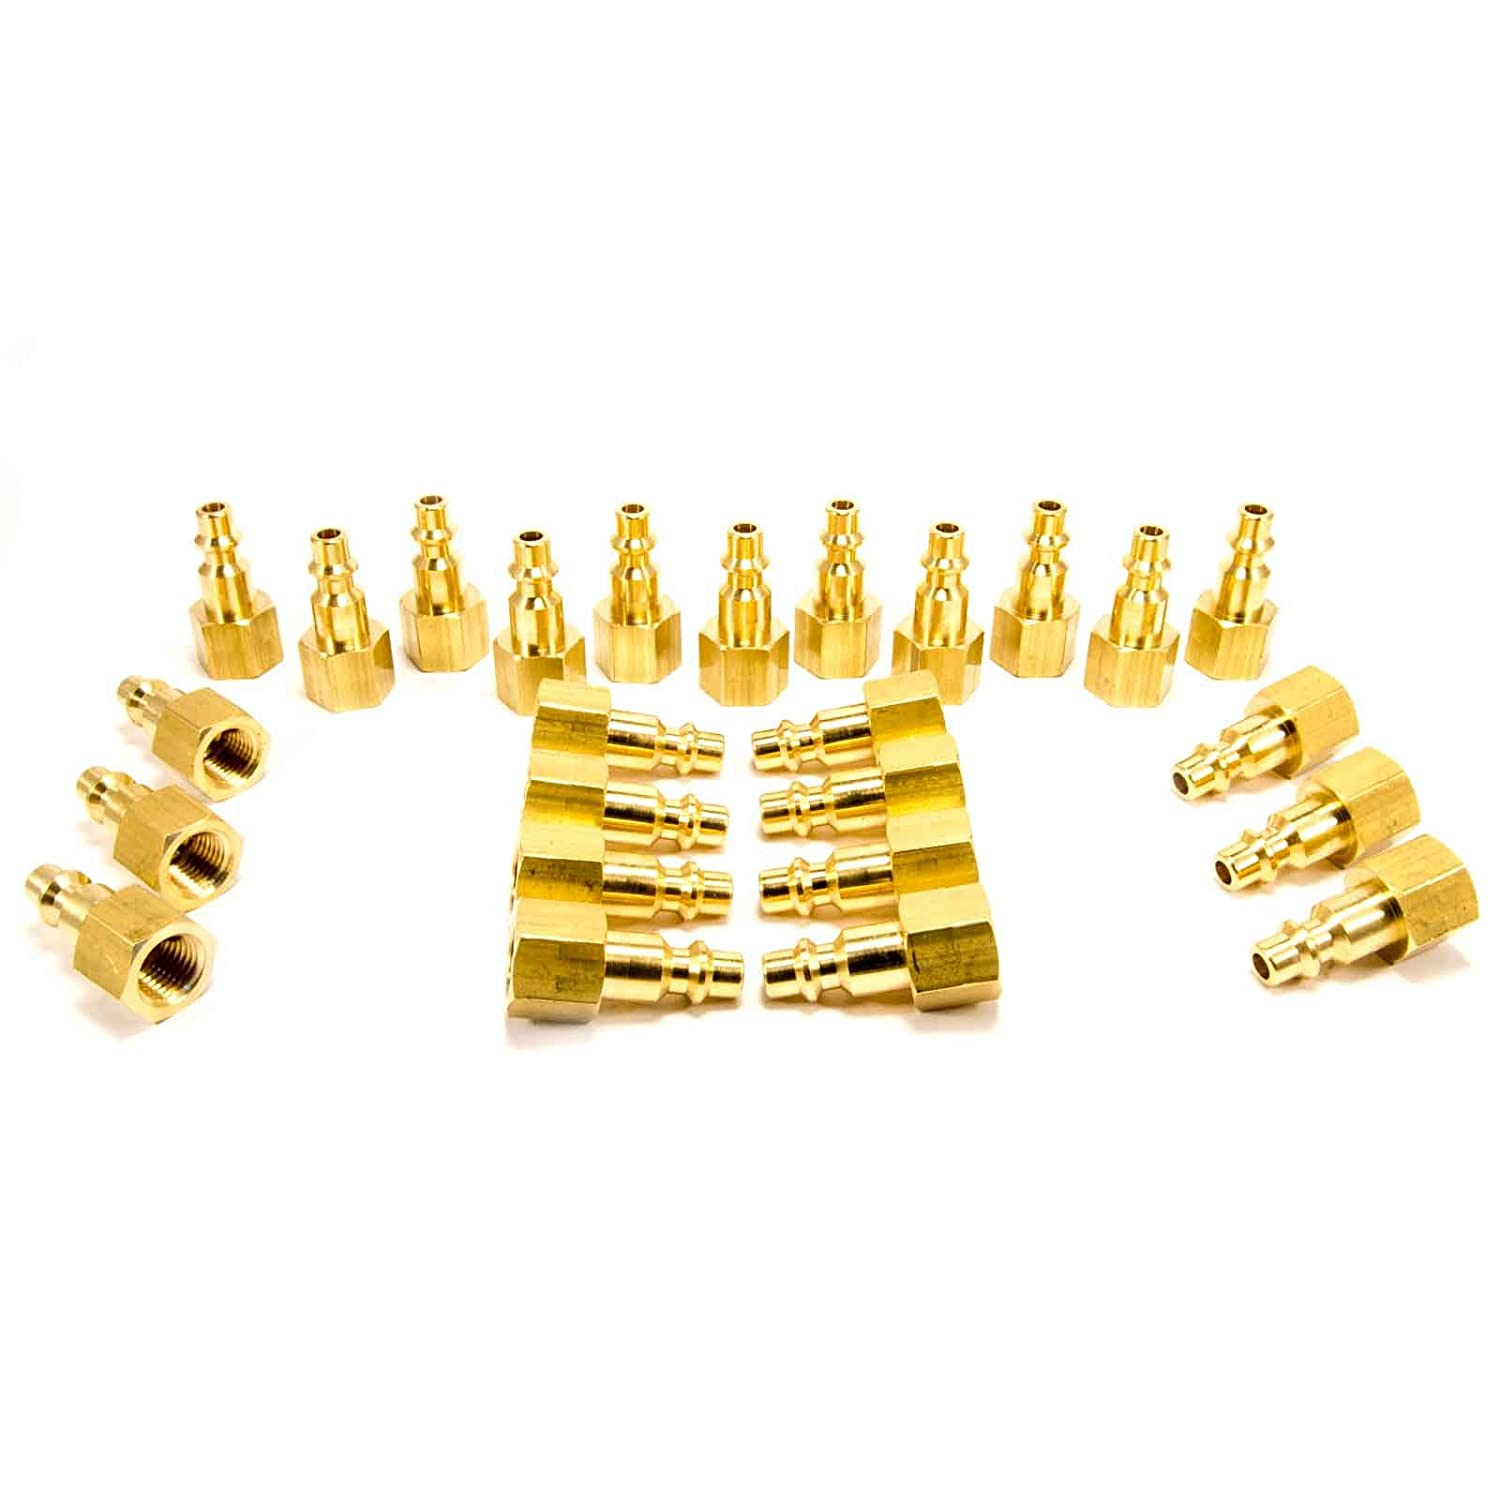 Foster 3 Series - Save money Brass Animer and price revision Plug Body I 1 4